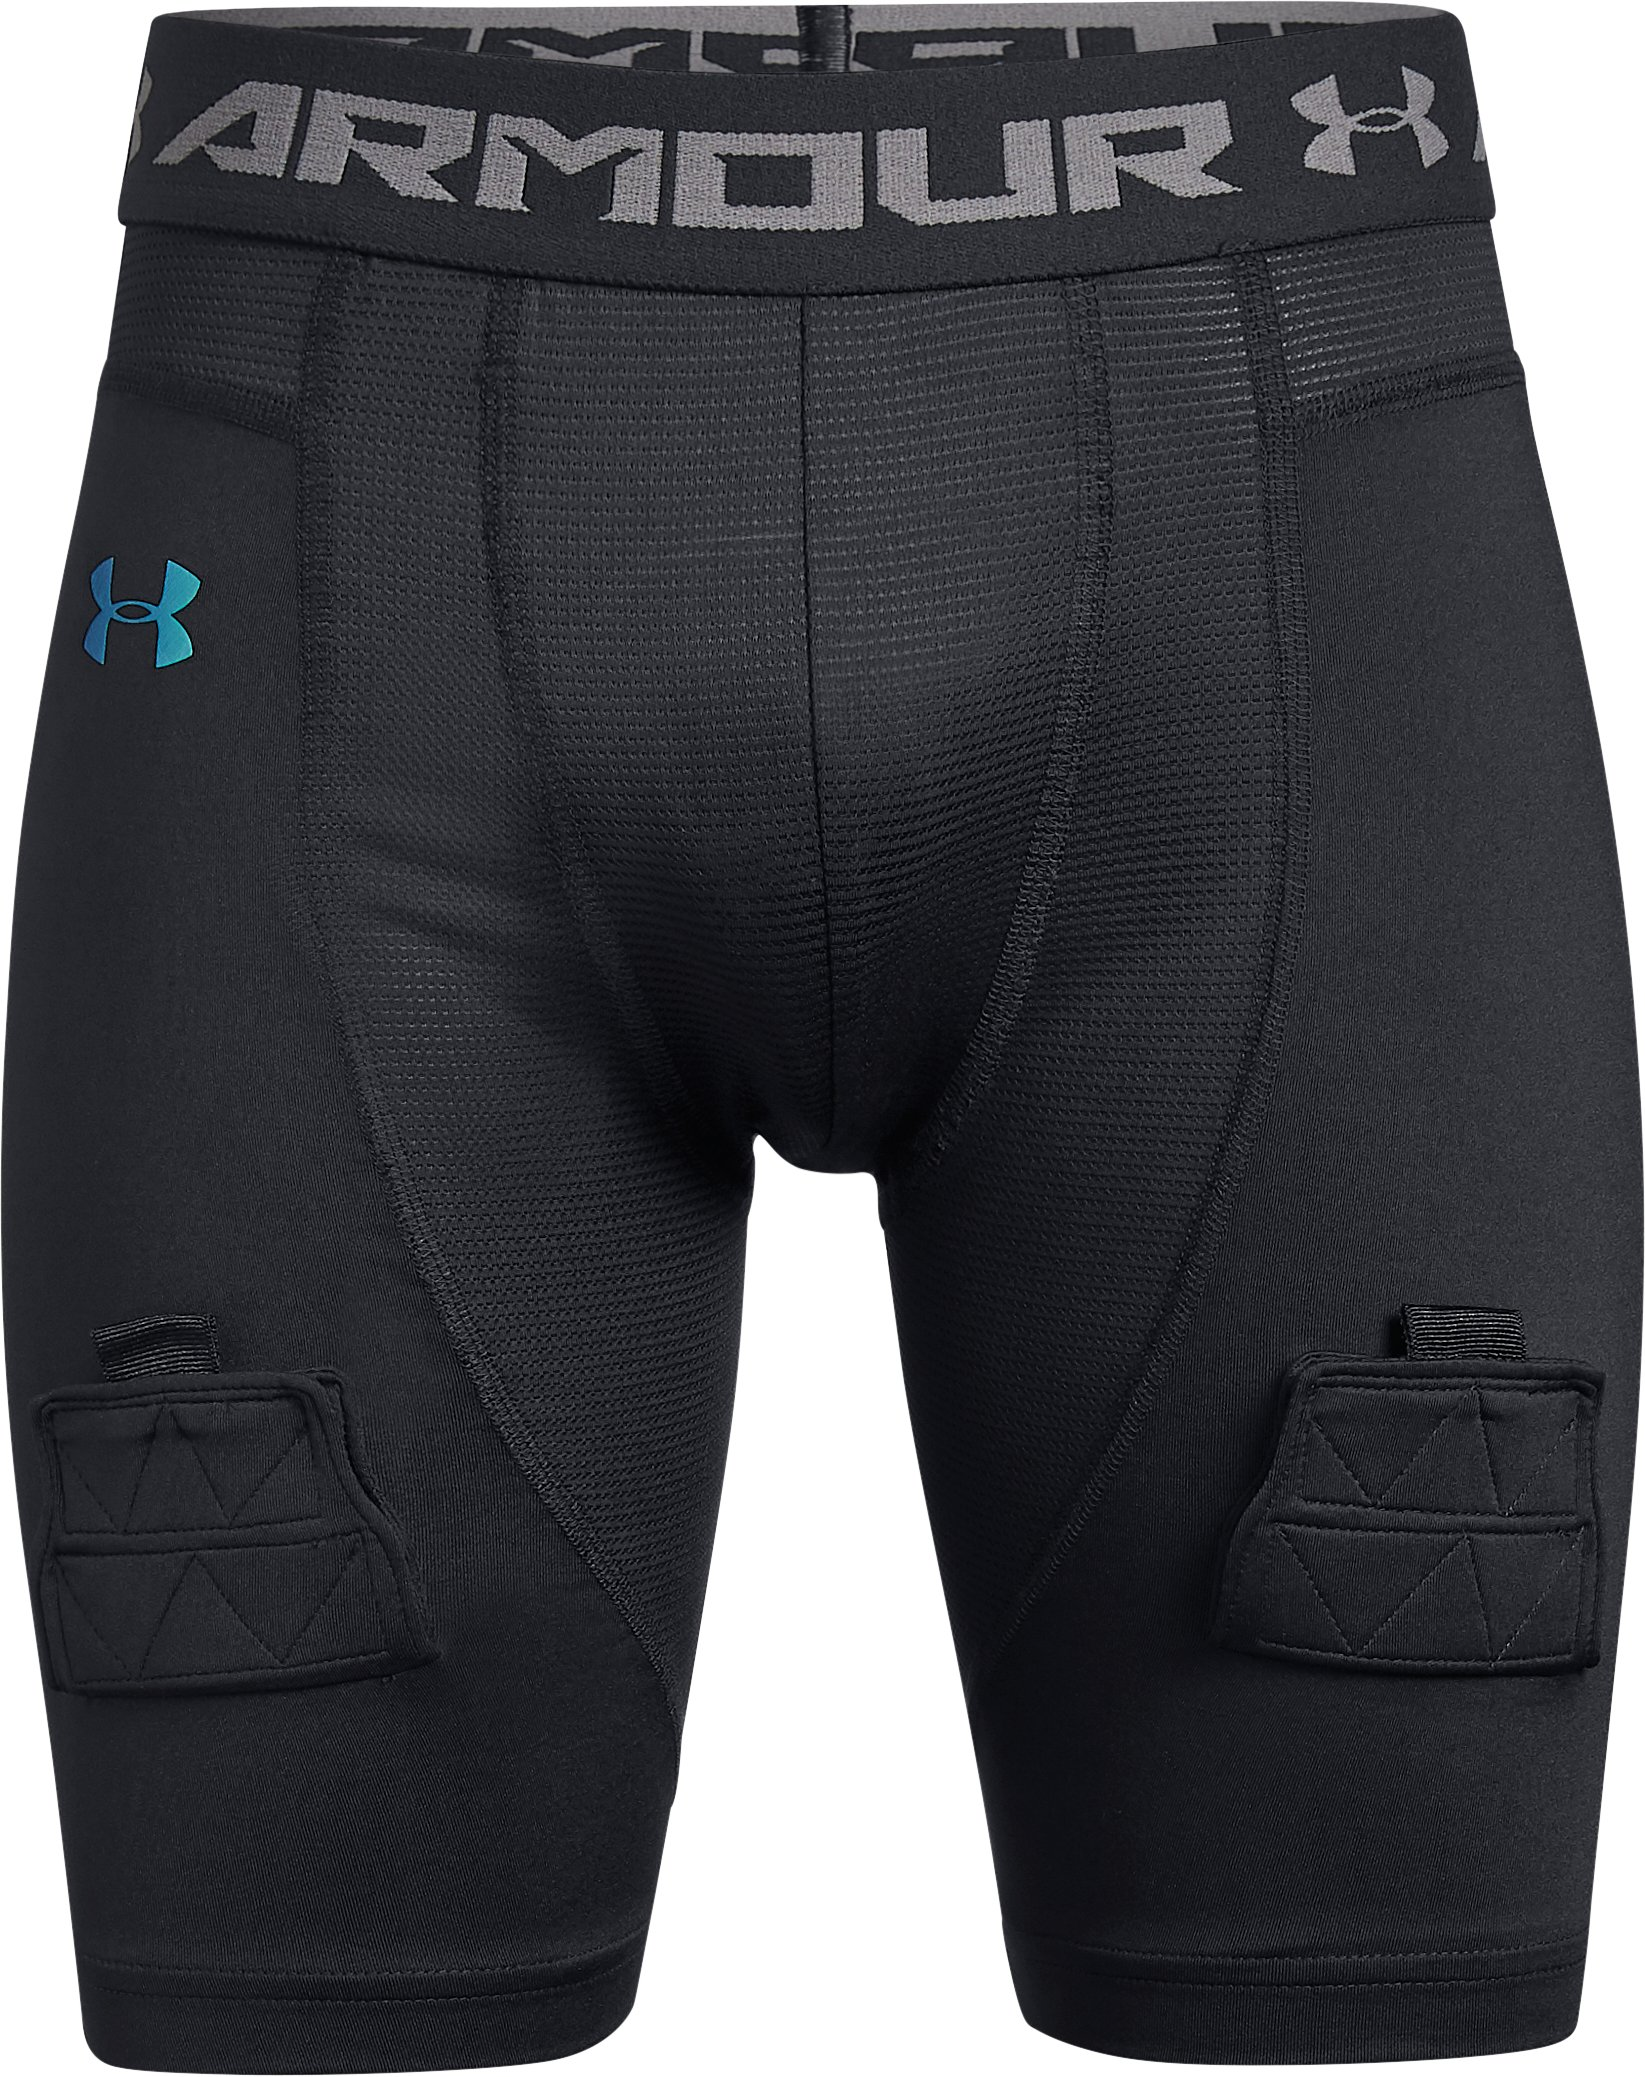 Boys' UA Hockey Shorts, Black